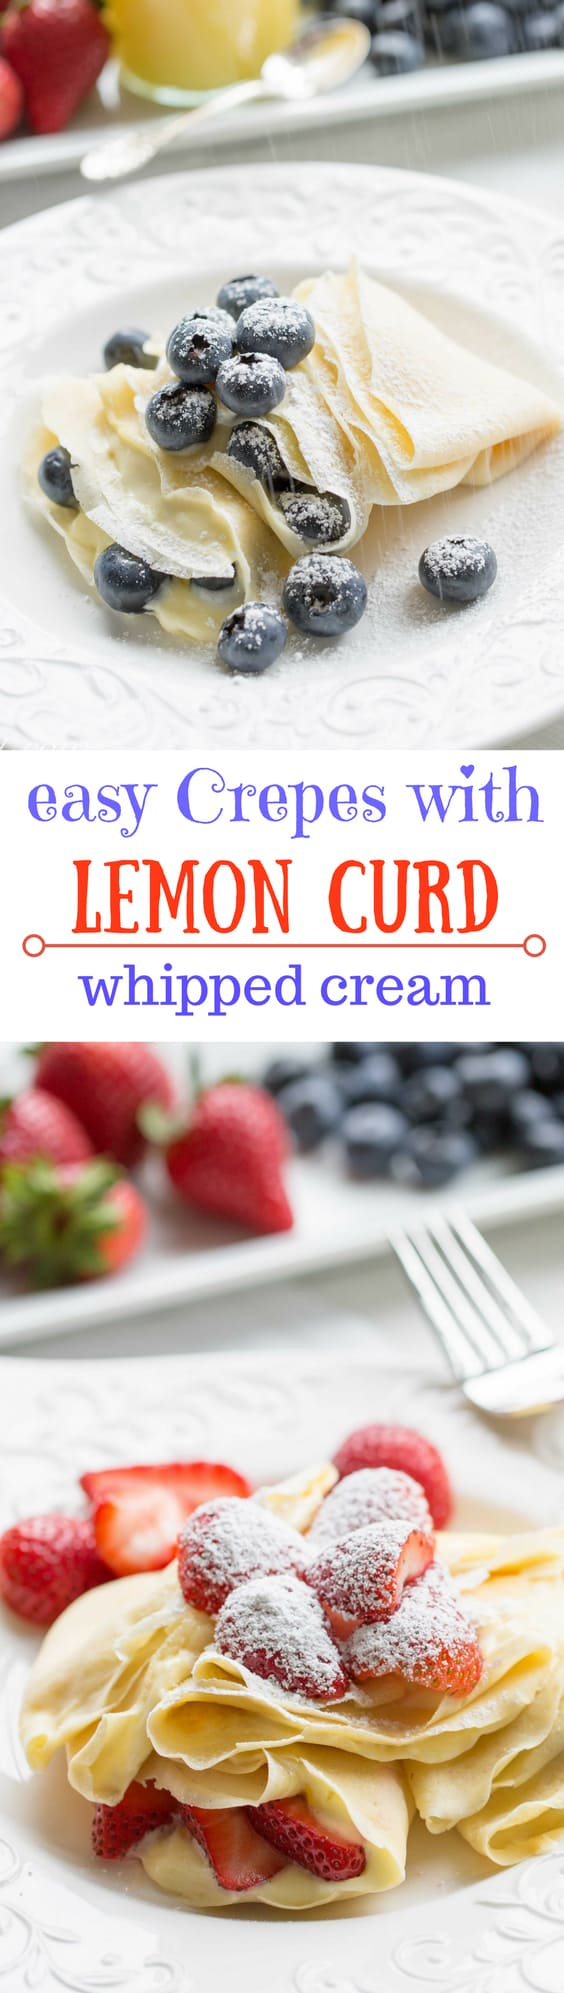 Easy Crepes with Lemon Curd Whipped Cream and fresh fruit | strawberries | blueberries | lemon curd | crepes | lemon whipped cream | www.savingdessert.com